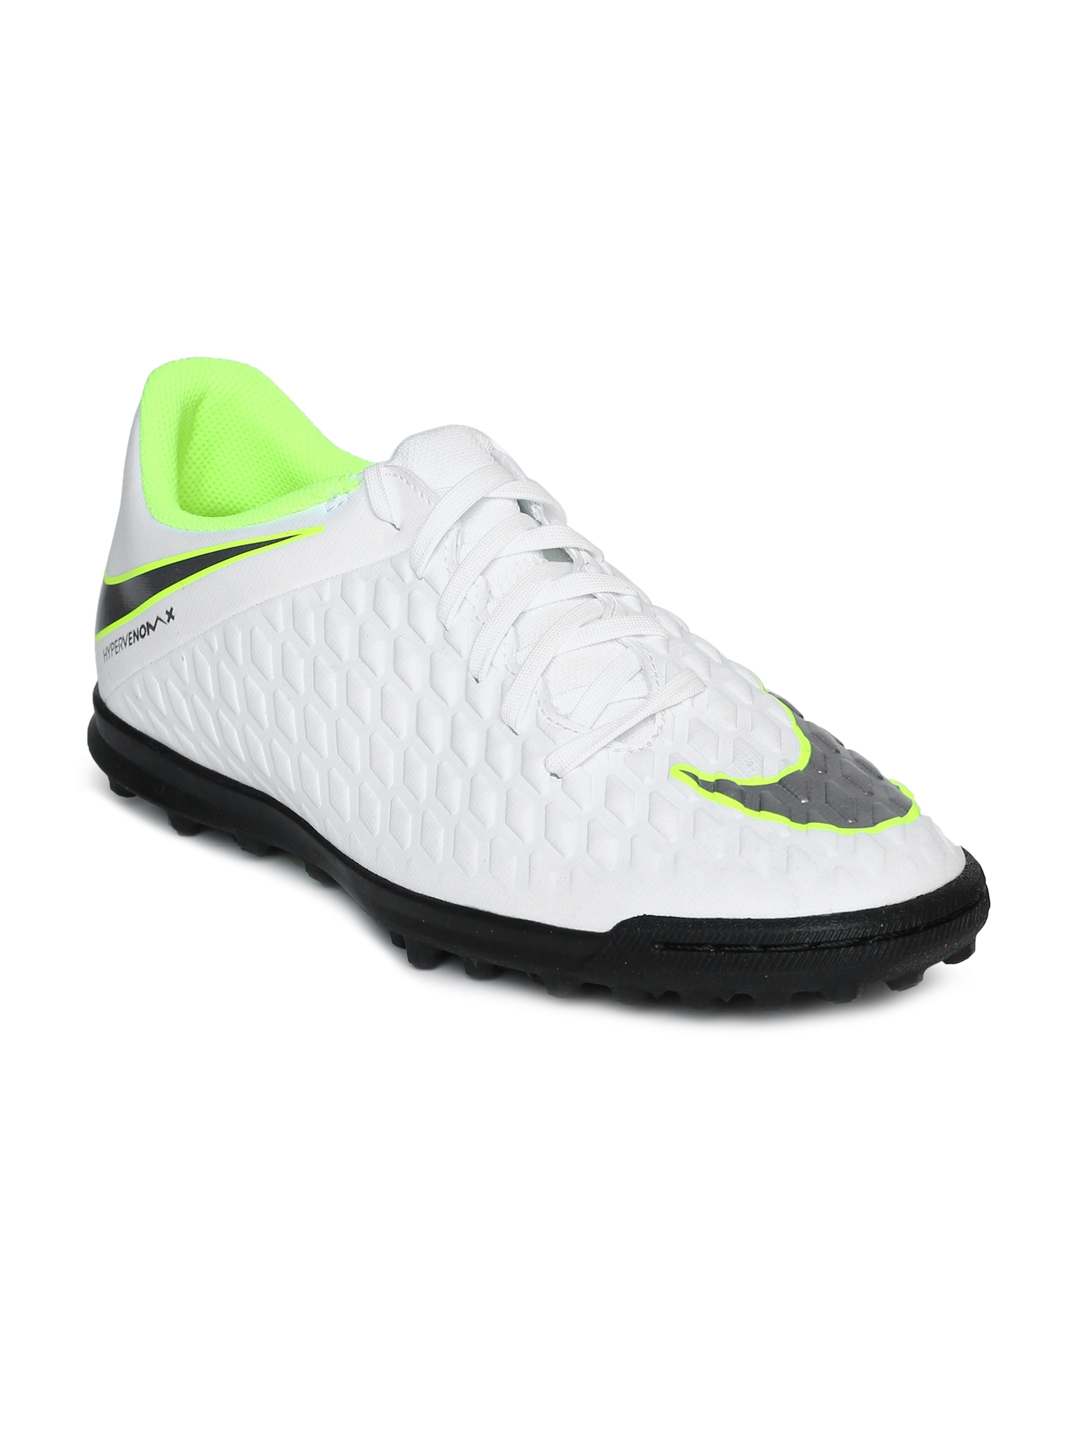 ee0f1a2db9e6d Buy Nike Unisex White PHANTOMX 3 CLUB TF Sports Shoes - Sports Shoes ...